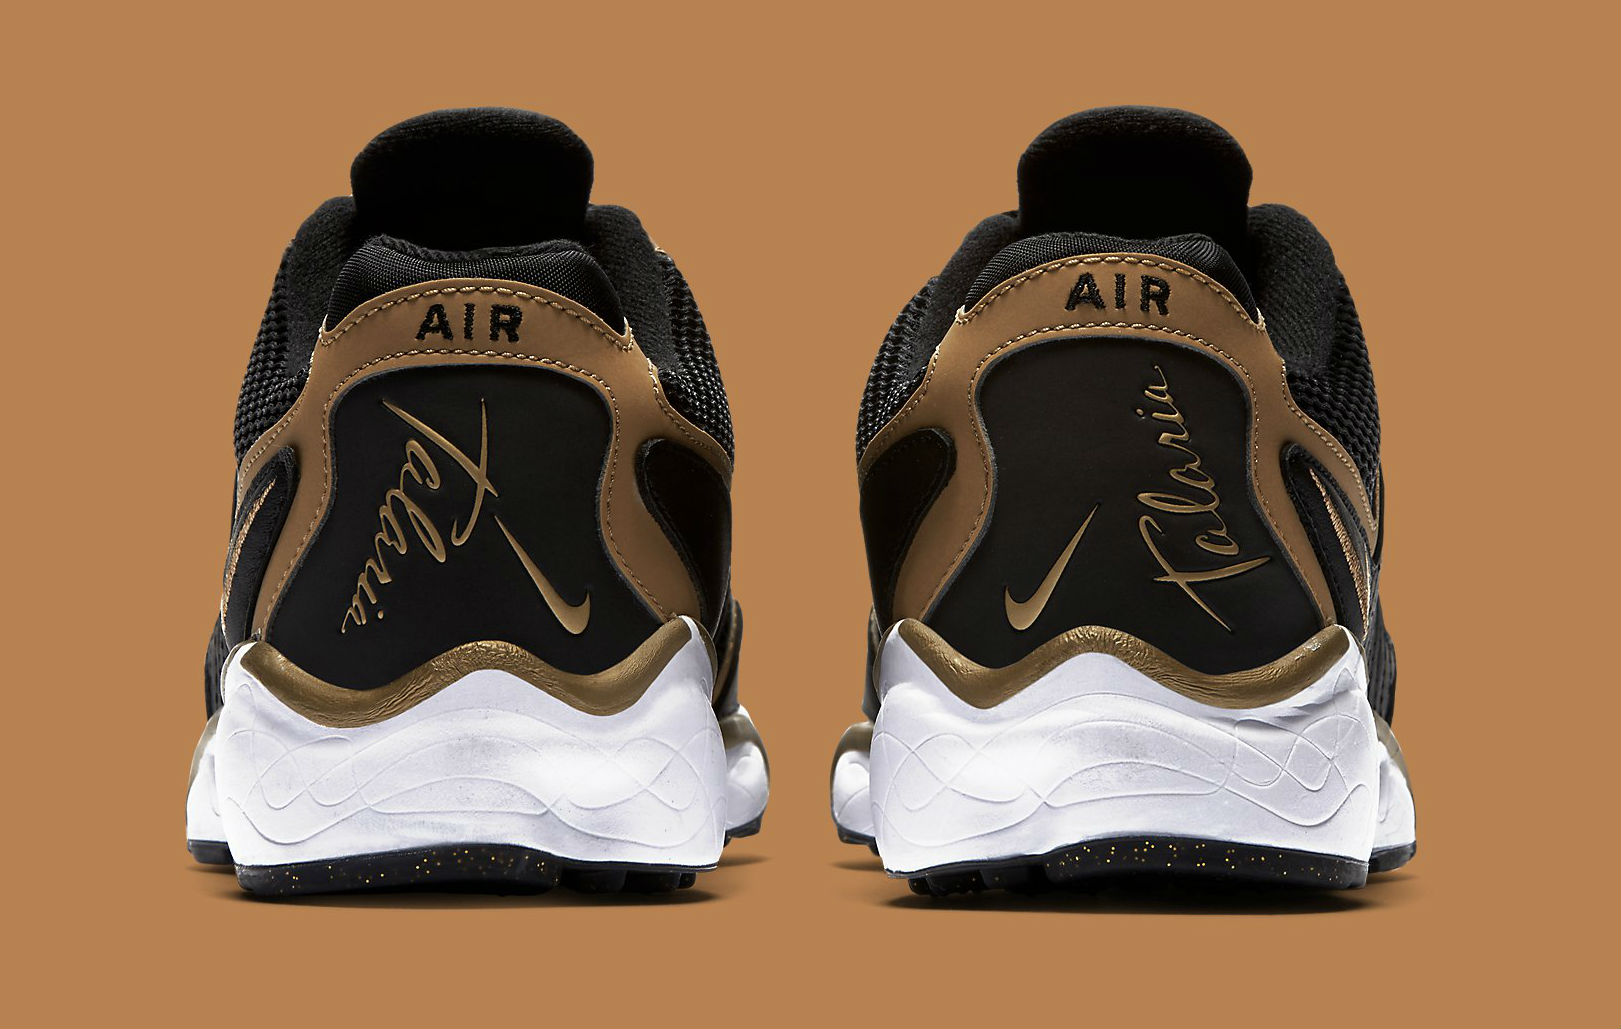 Nike Air Zoom Talaria Black/Gold Heel